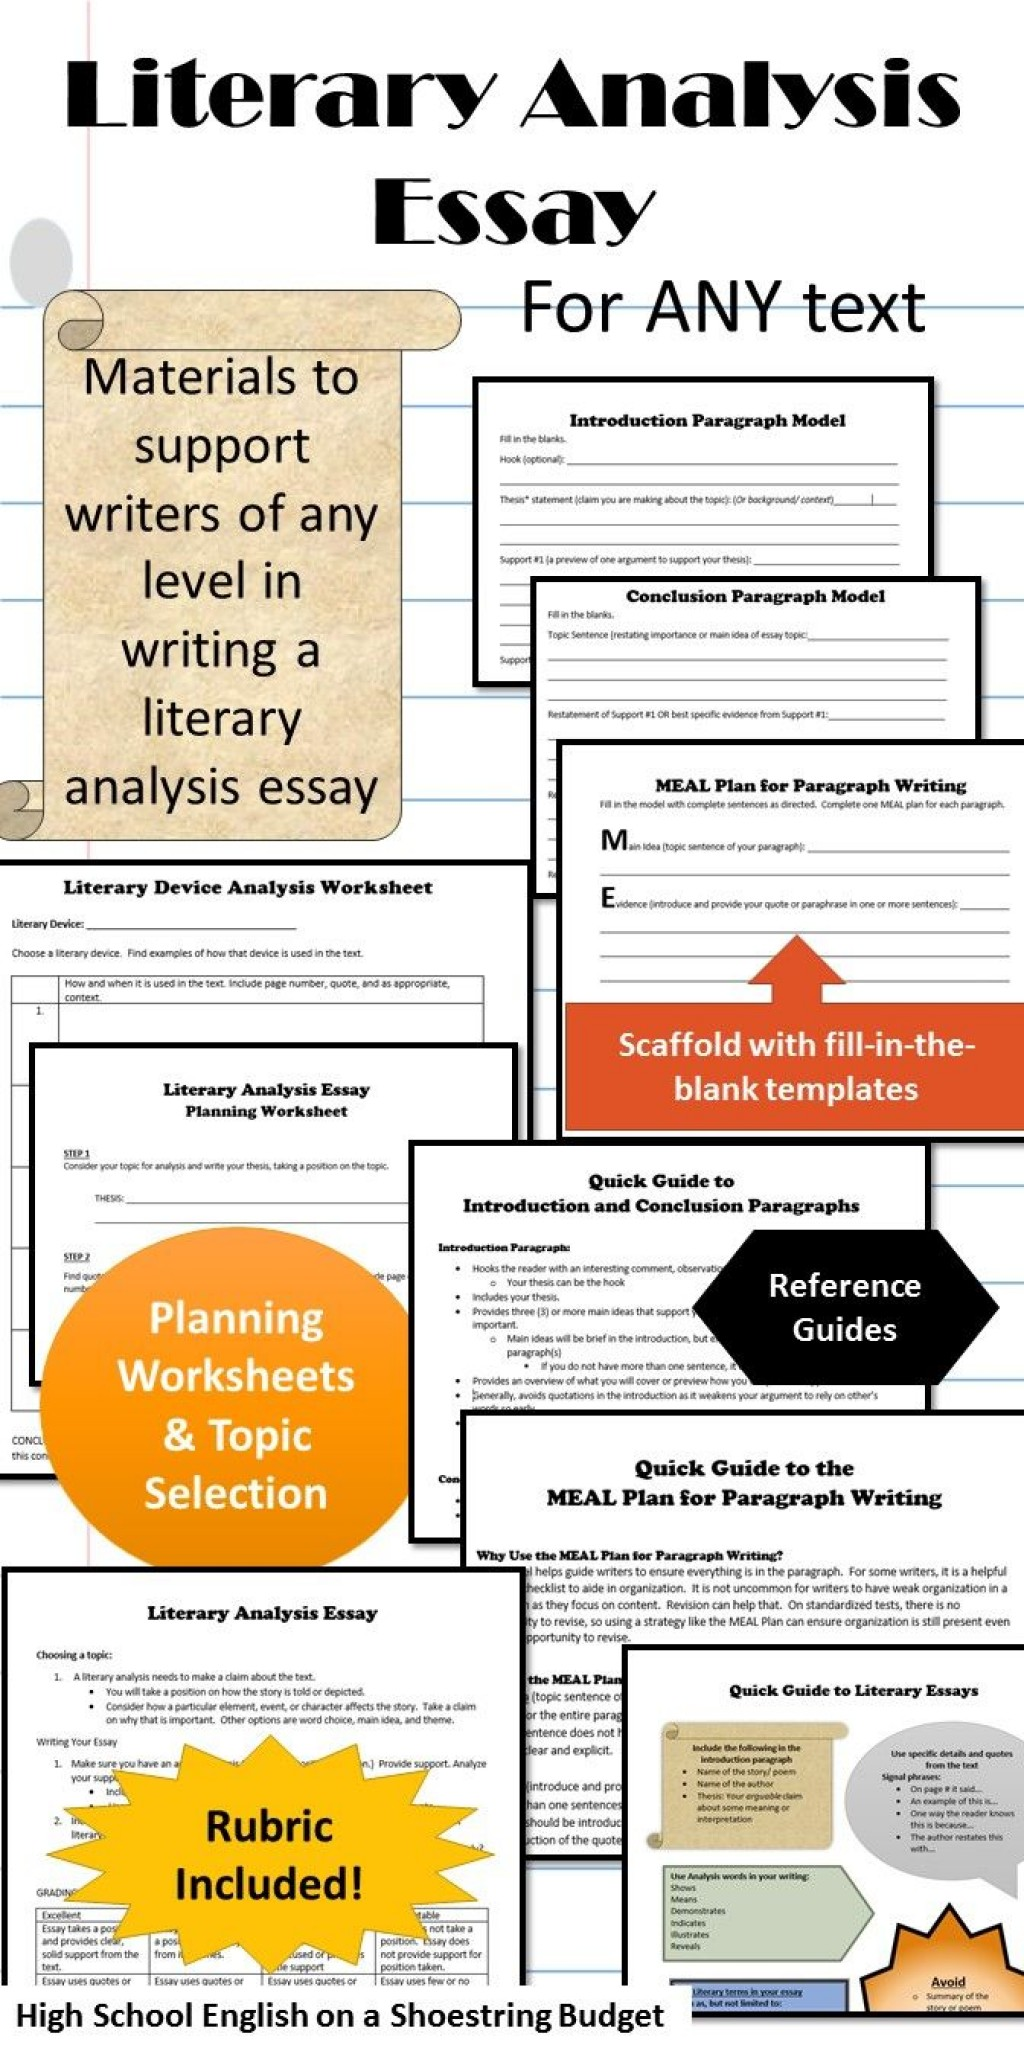 007 Essay On English Literature Pdf Research Paper Fearsome Large